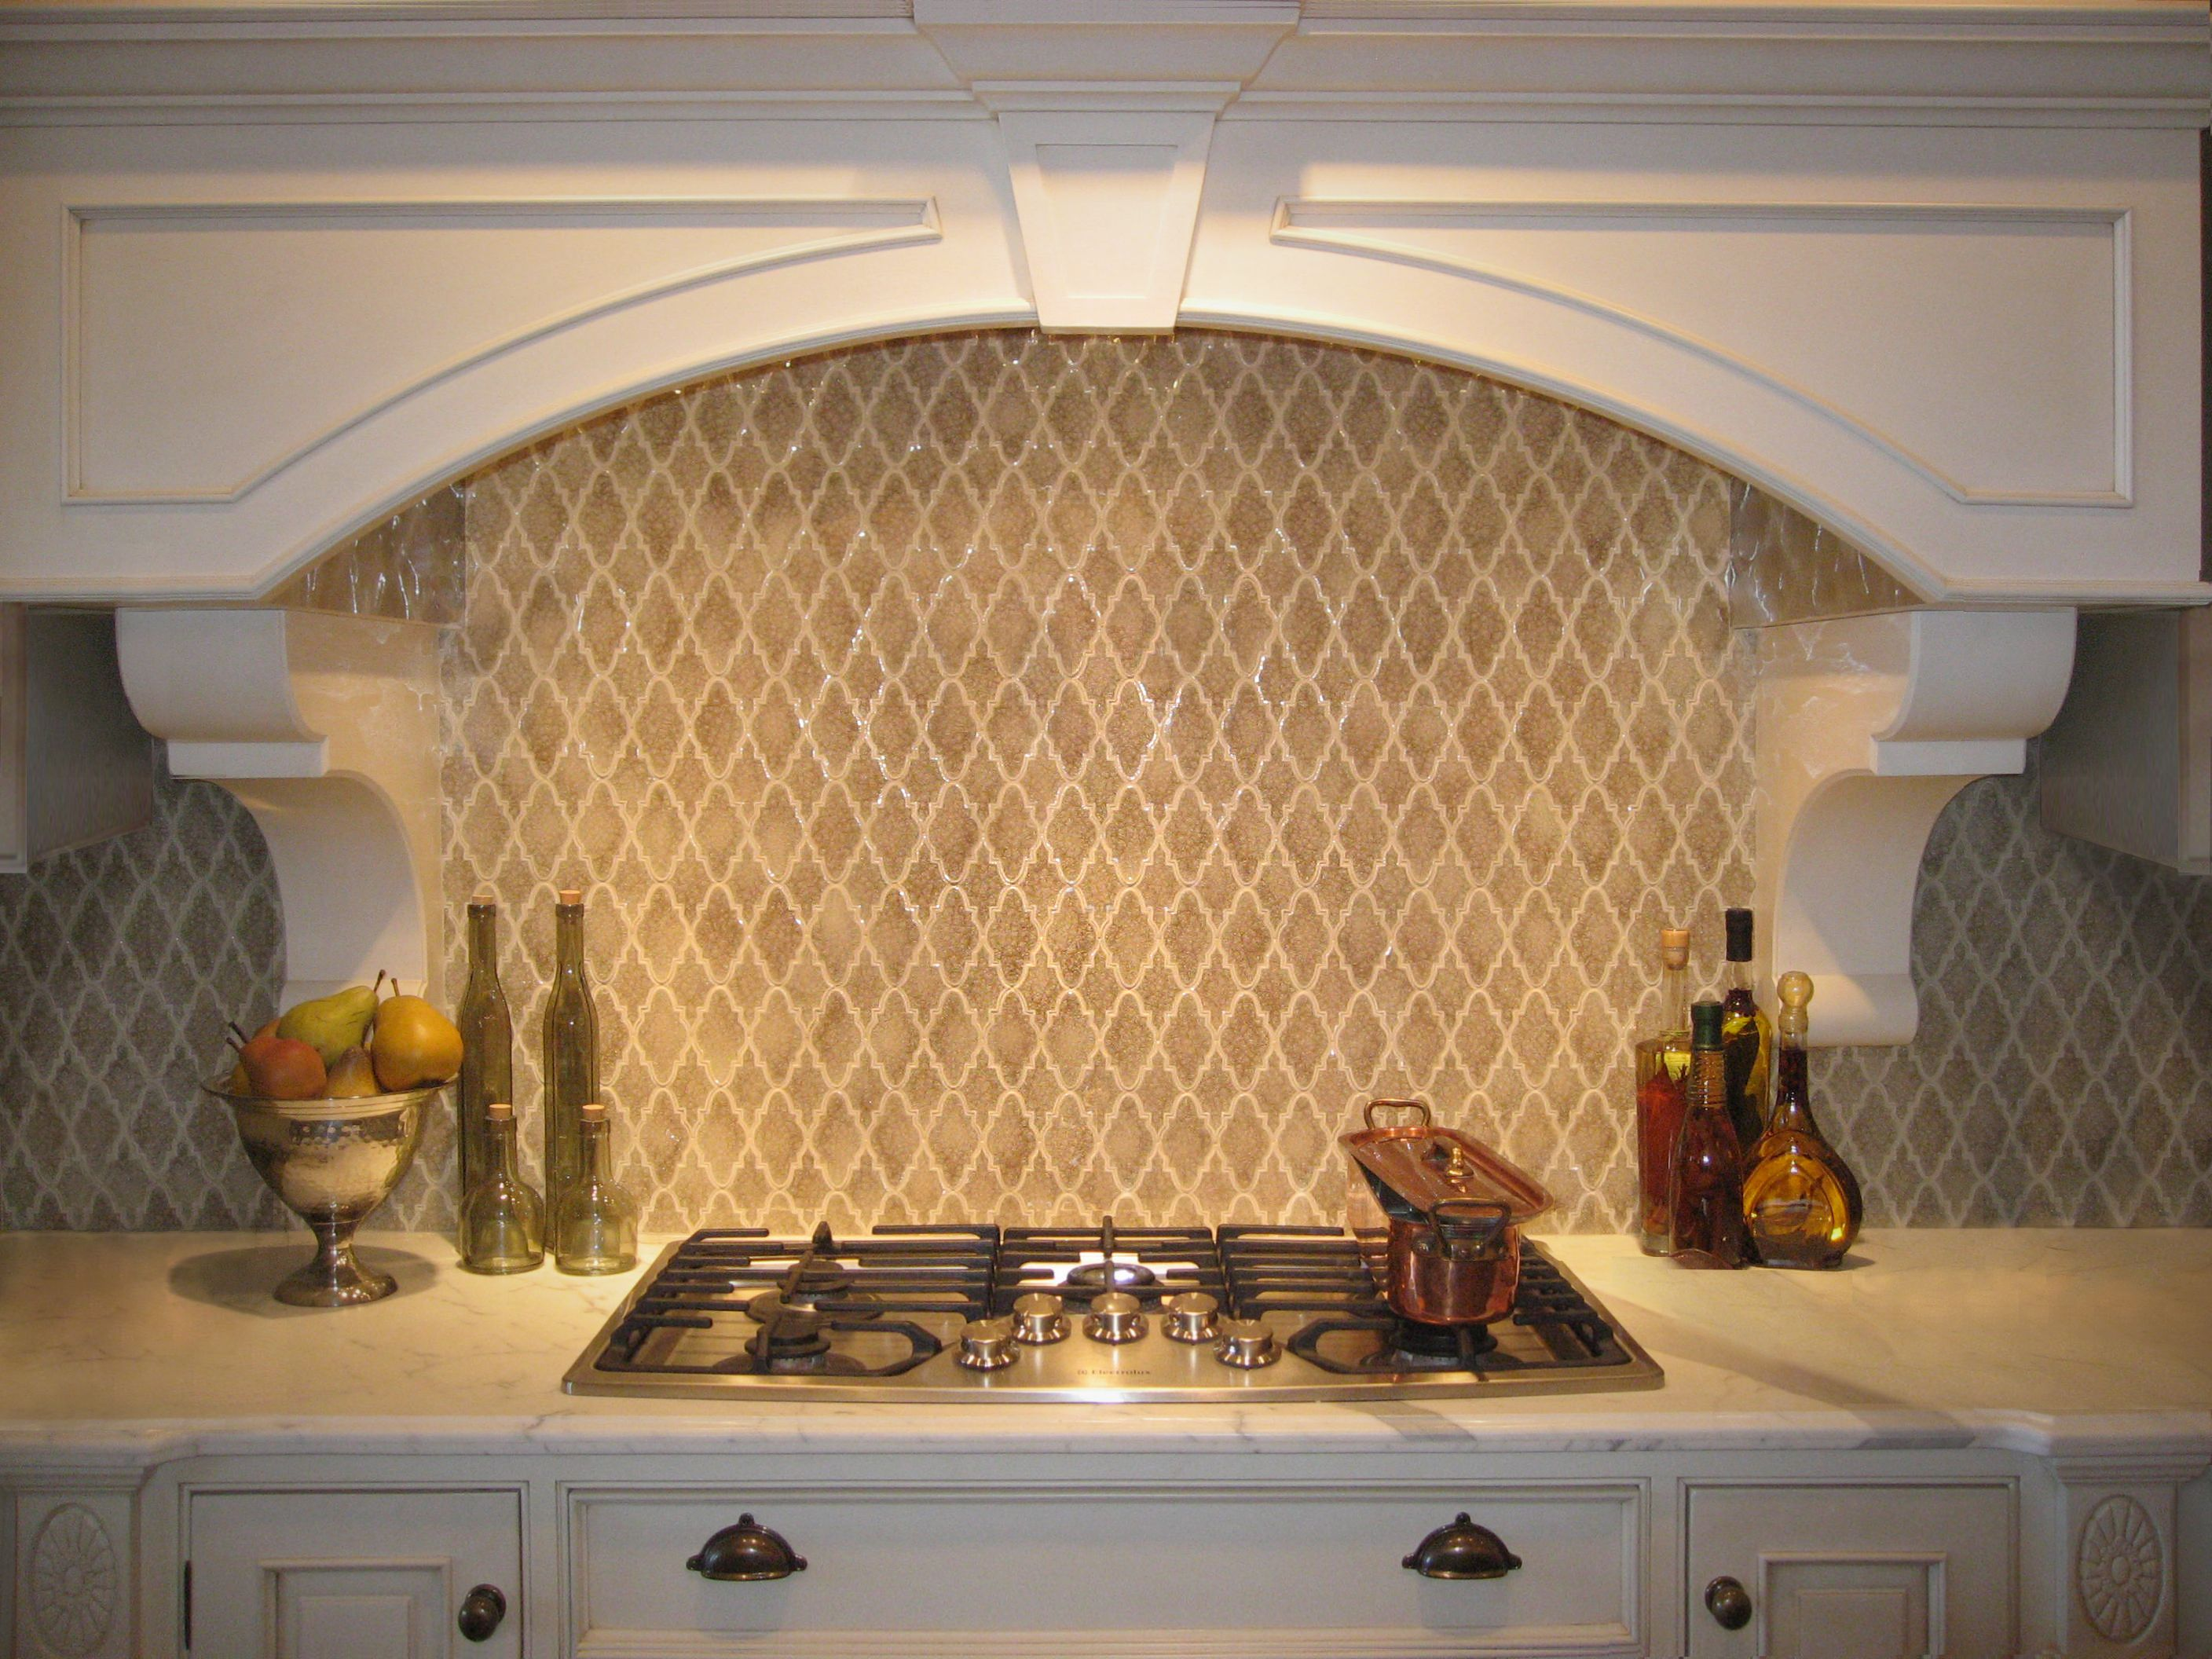 kitchen backsplash mosaic kitchen backsplash Encore Ceramics Arabesque Mosaic hand glazed in Martini jewel Sustainably made in Oregon Backsplash IdeasKitchen